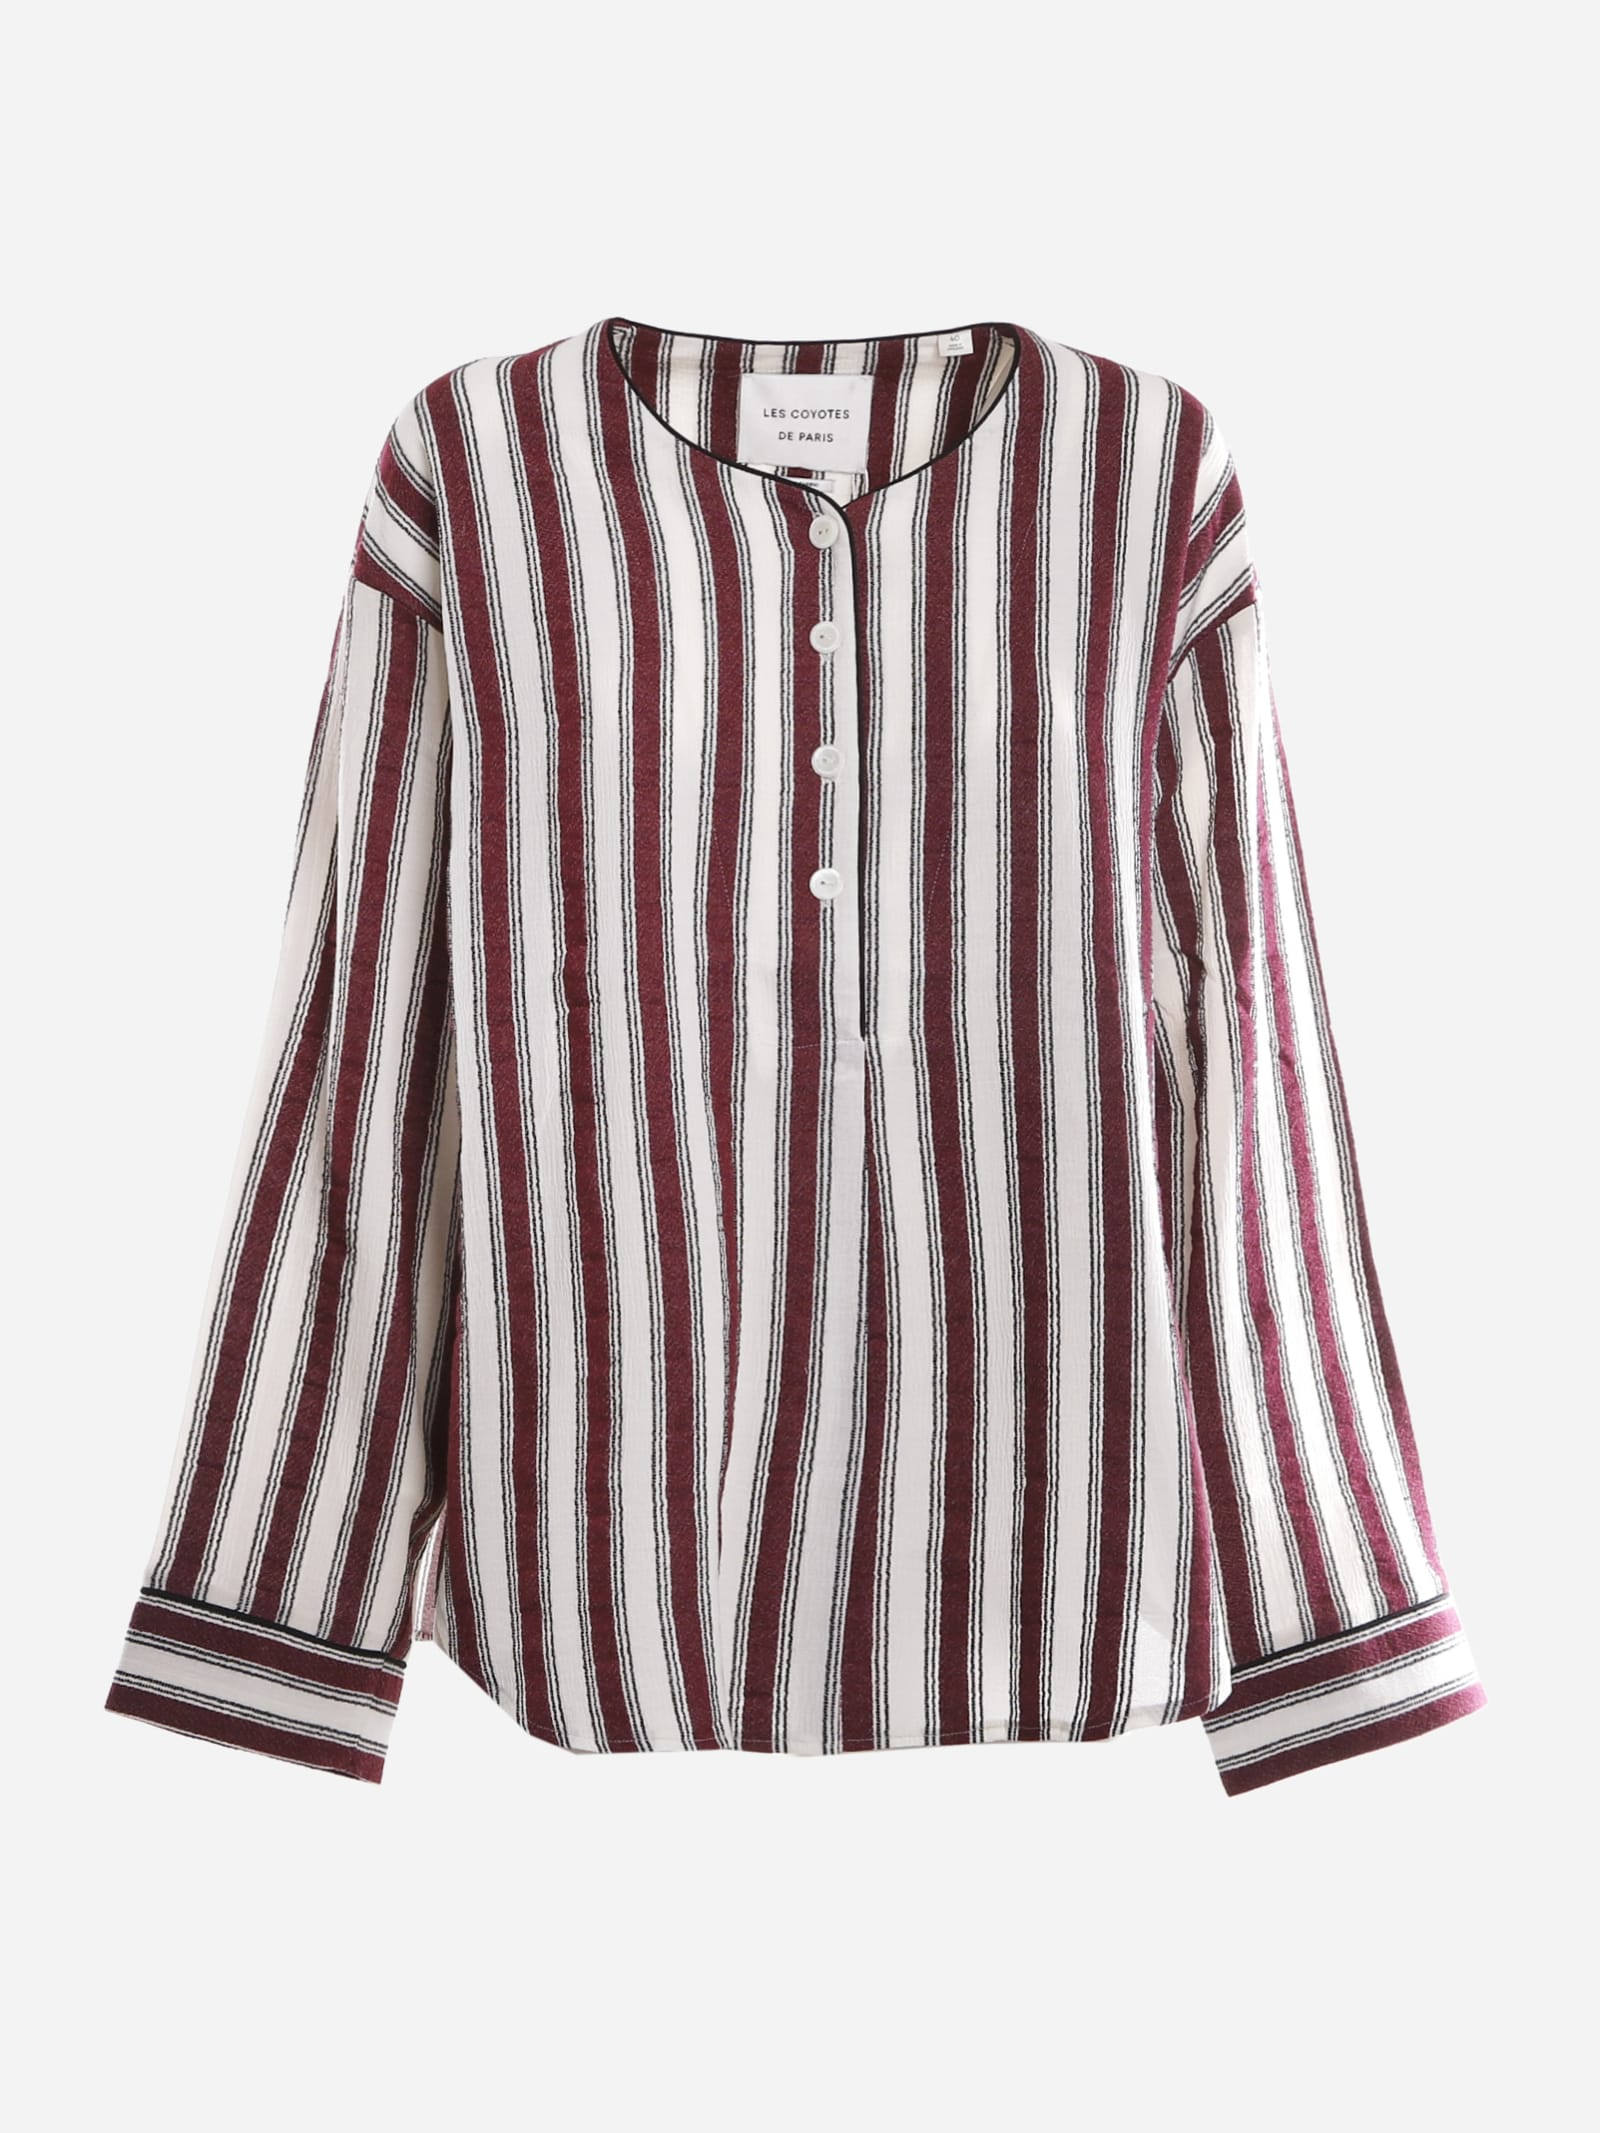 Cotton Blend Shirt With All-over Striped Pattern